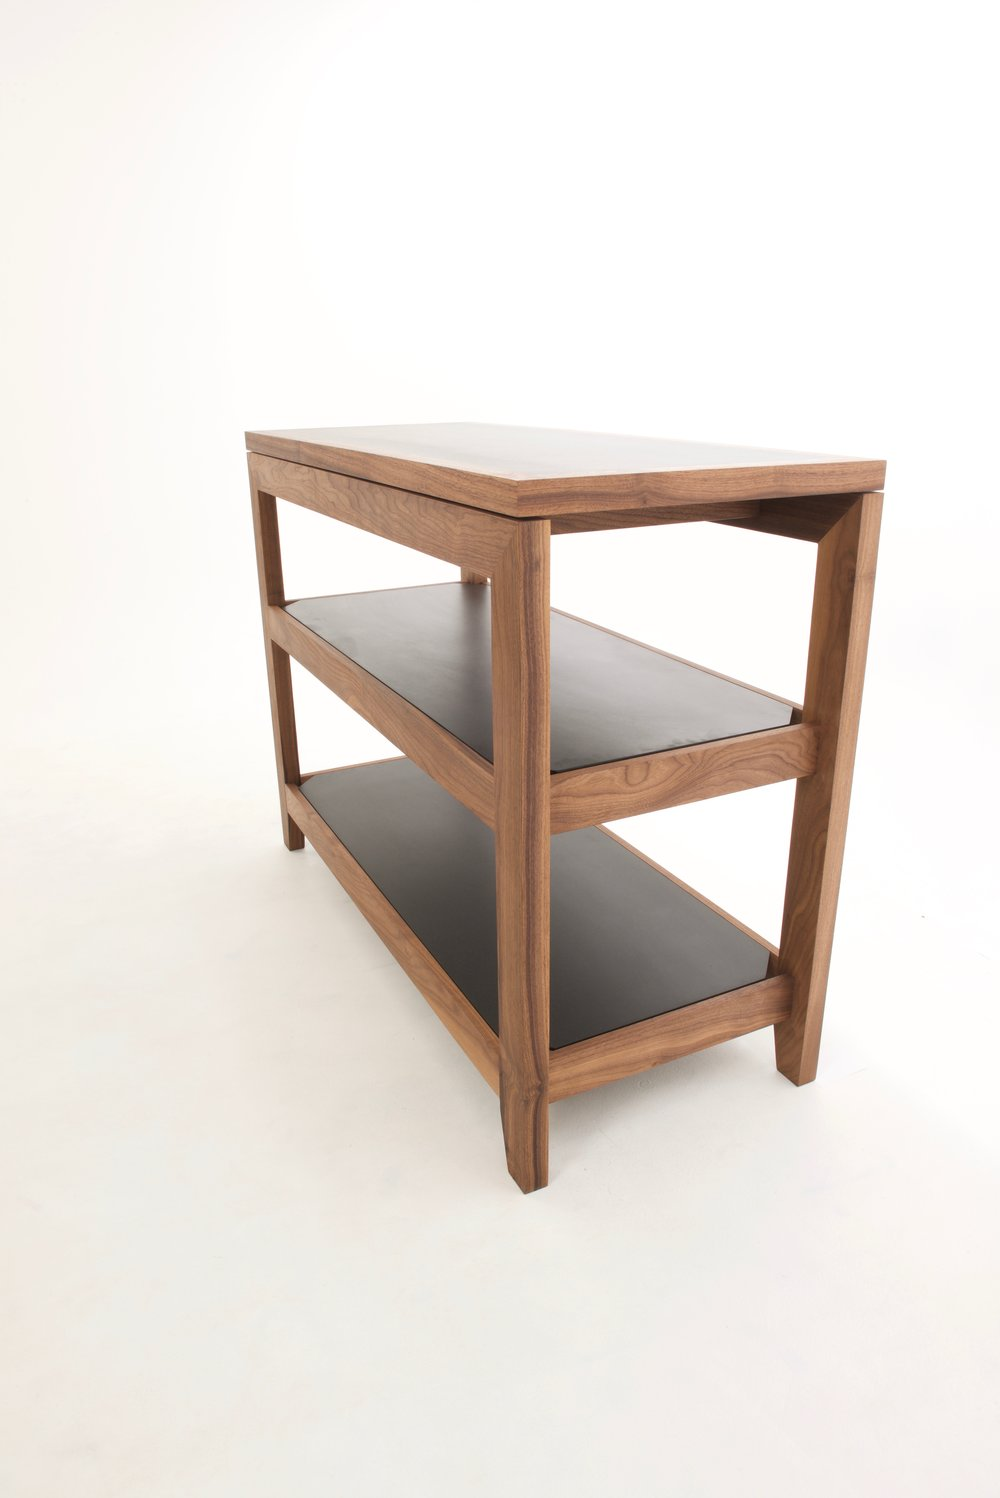 Shown in Walnut & Black Valchromat shelves.